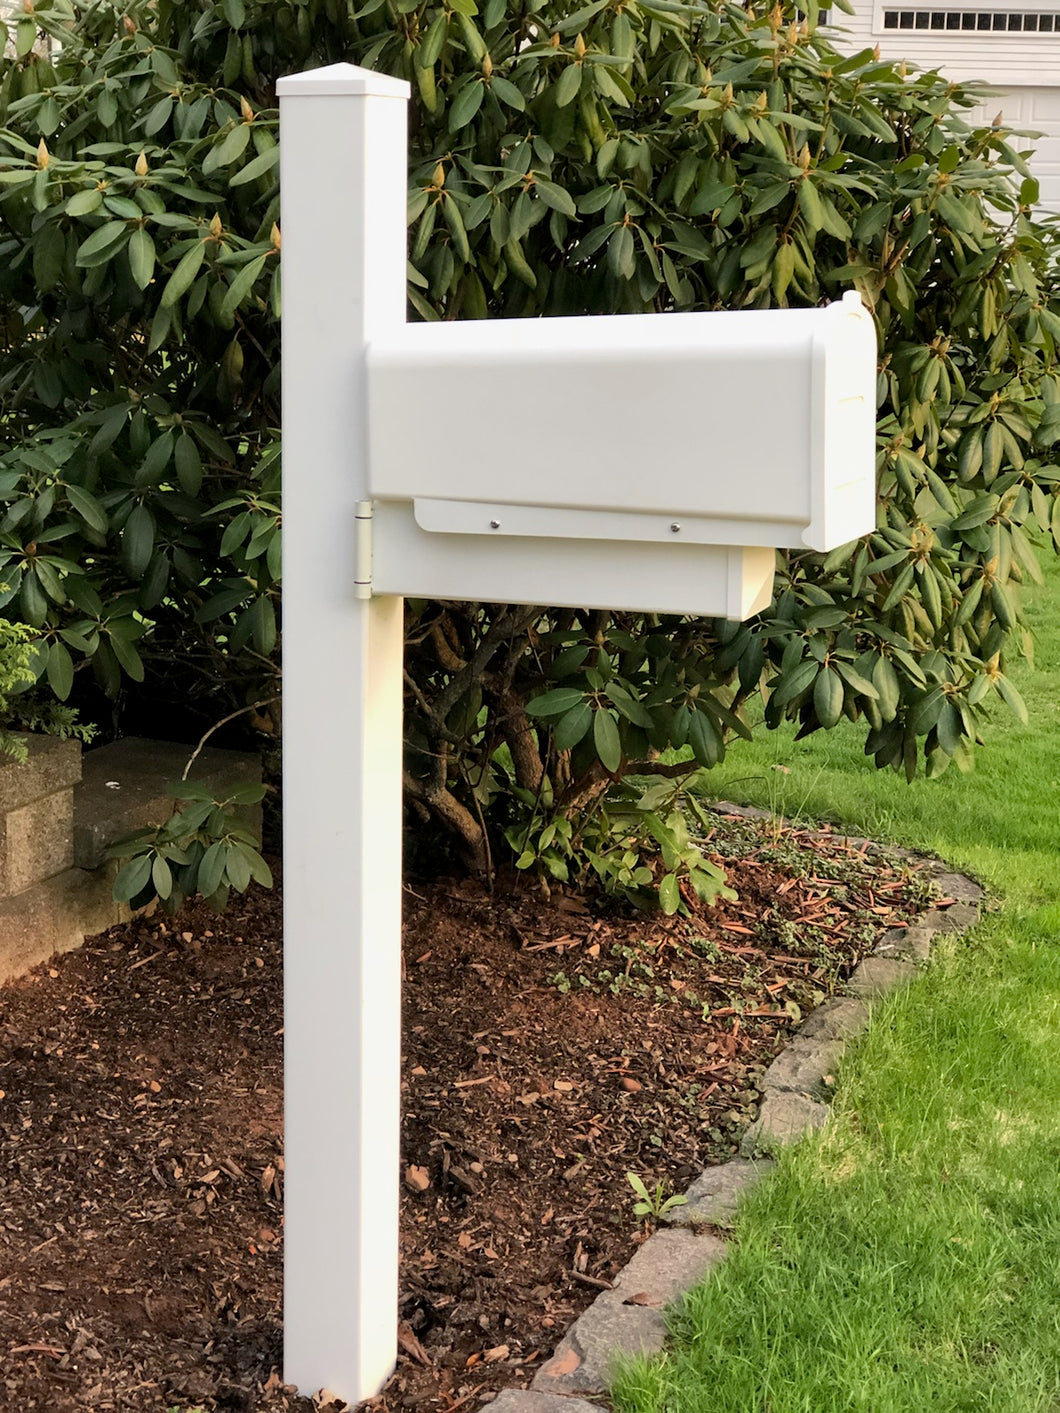 The First Lady-Swing Hinge Mailbox & Post